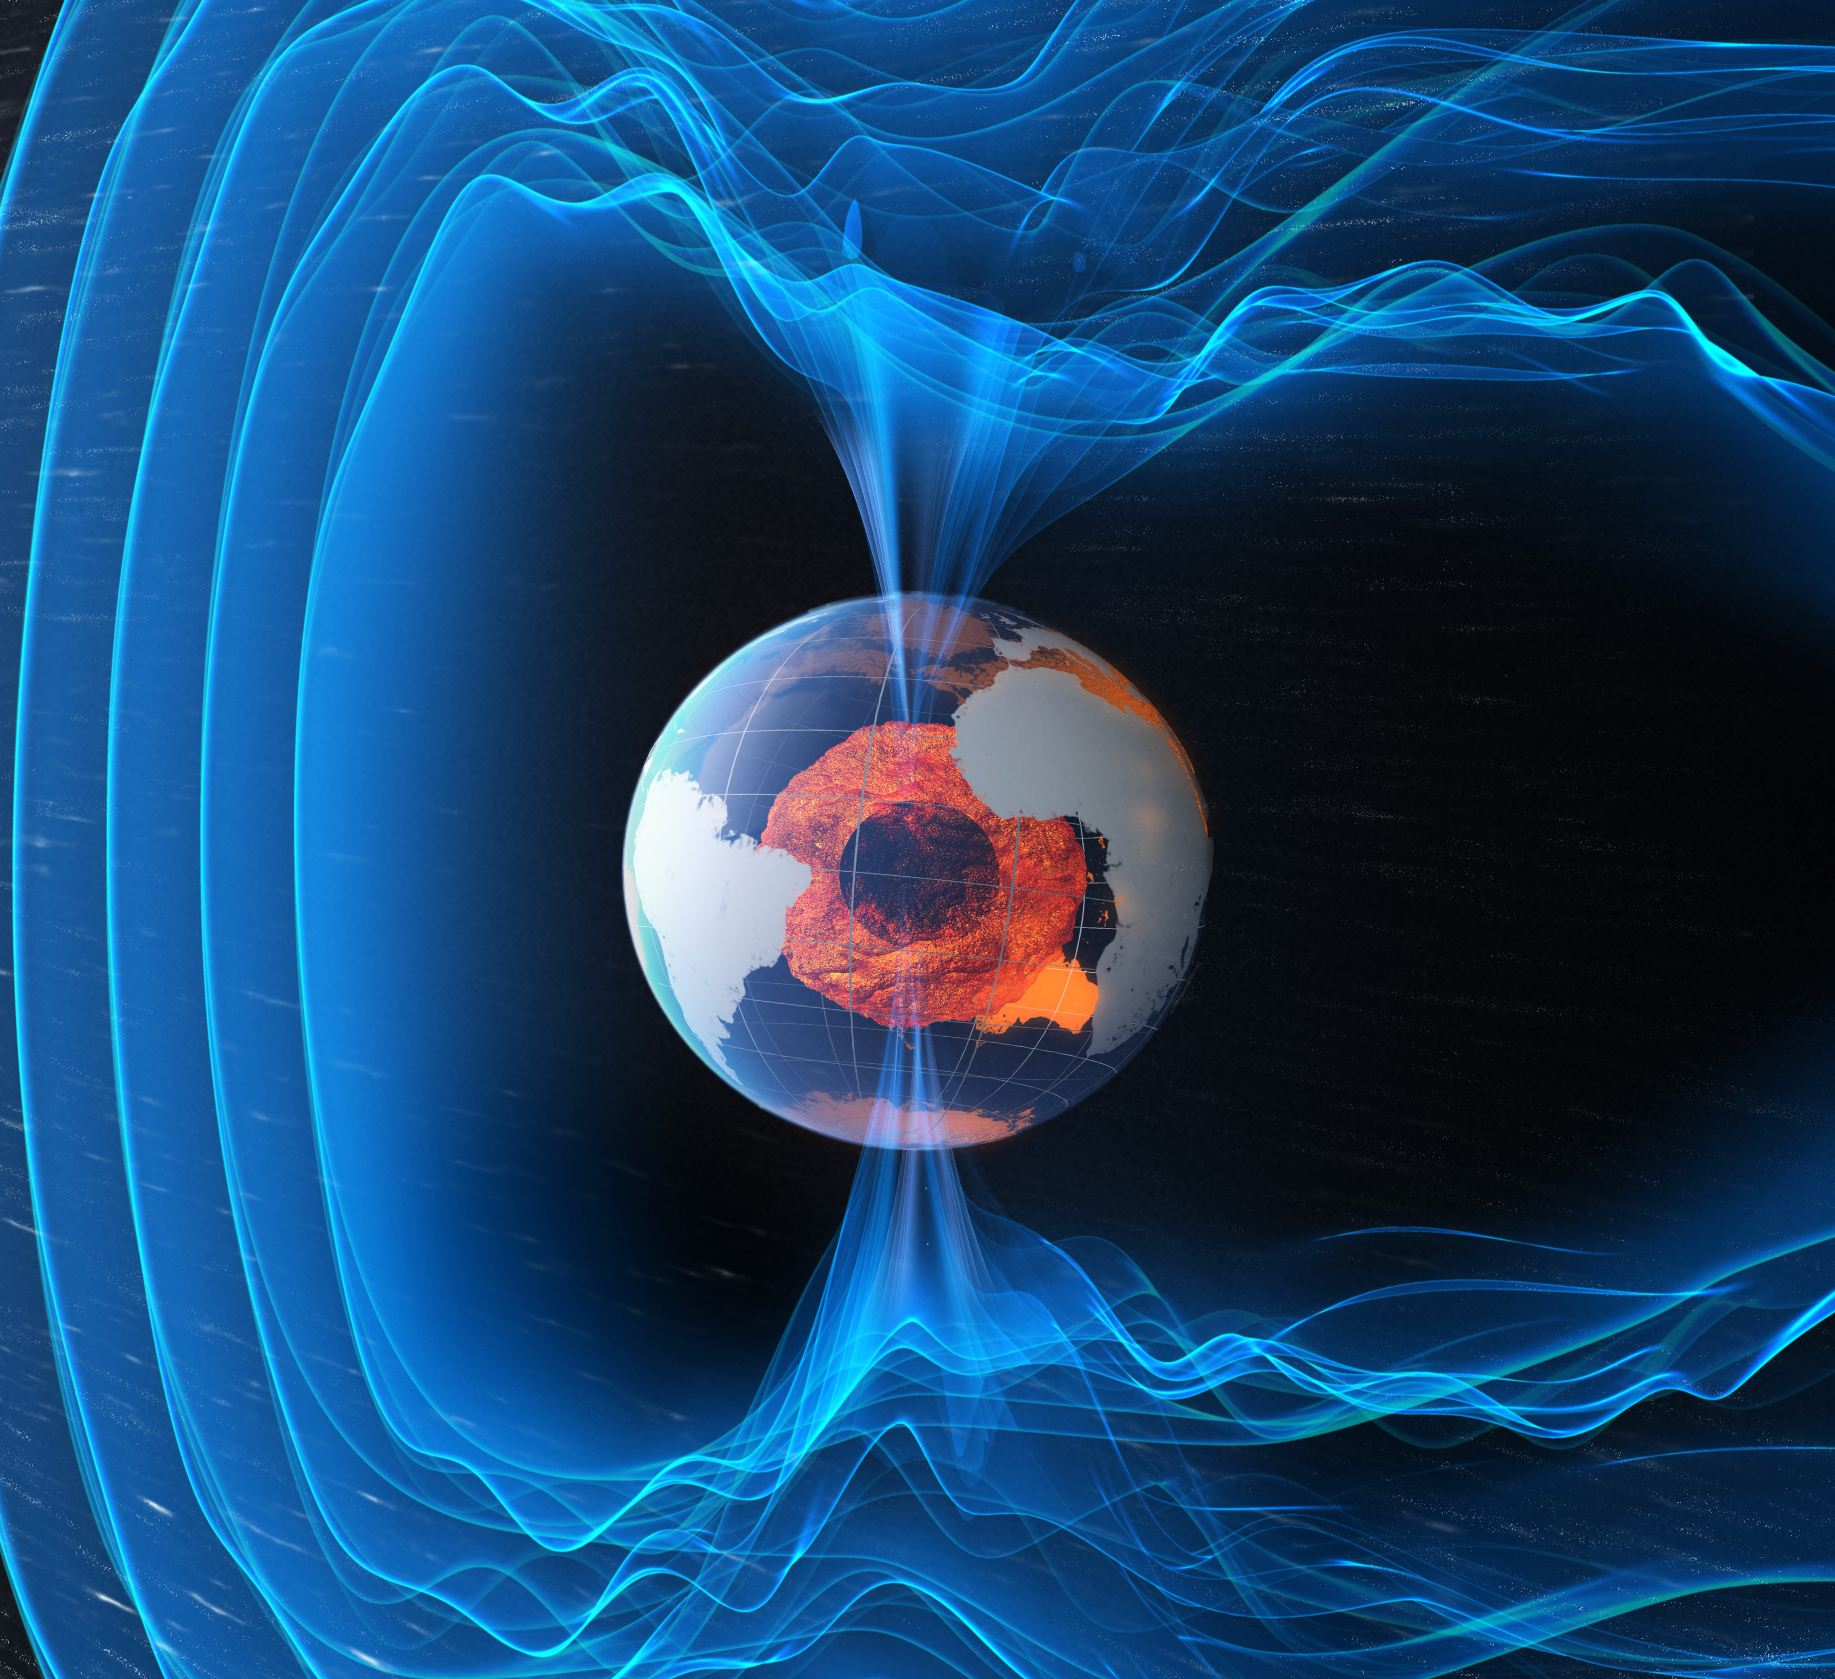 http://www.esa.int/spaceinimages/Images/2013/11/Earth_s_magnetic_field